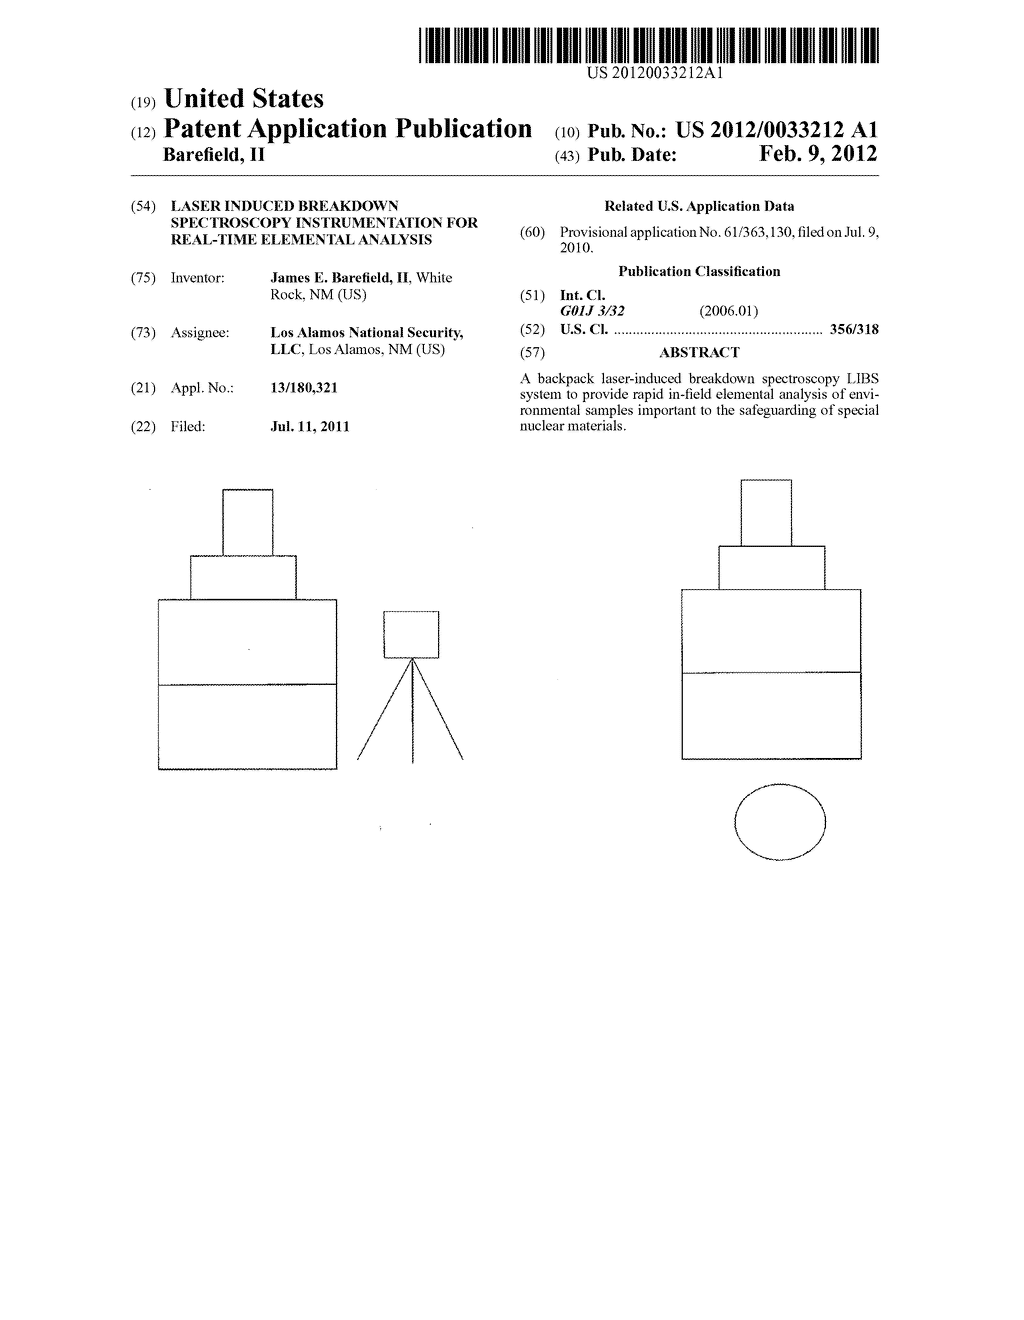 LASER INDUCED BREAKDOWN SPECTROSCOPY INSTRUMENTATION FOR REAL-TIME     ELEMENTAL ANALYSIS - diagram, schematic, and image 01